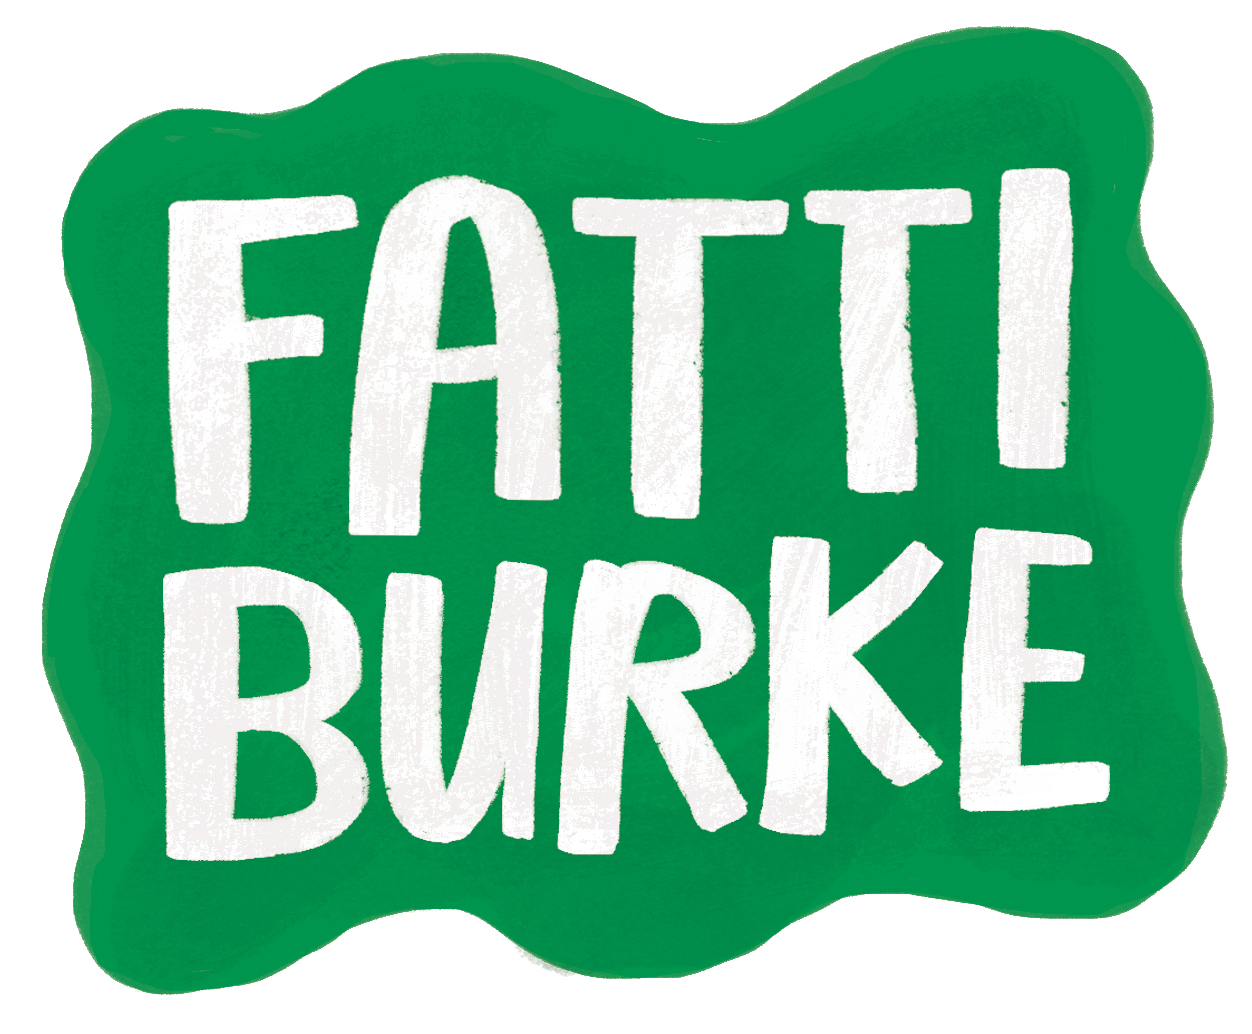 Fatti Burke Illustration